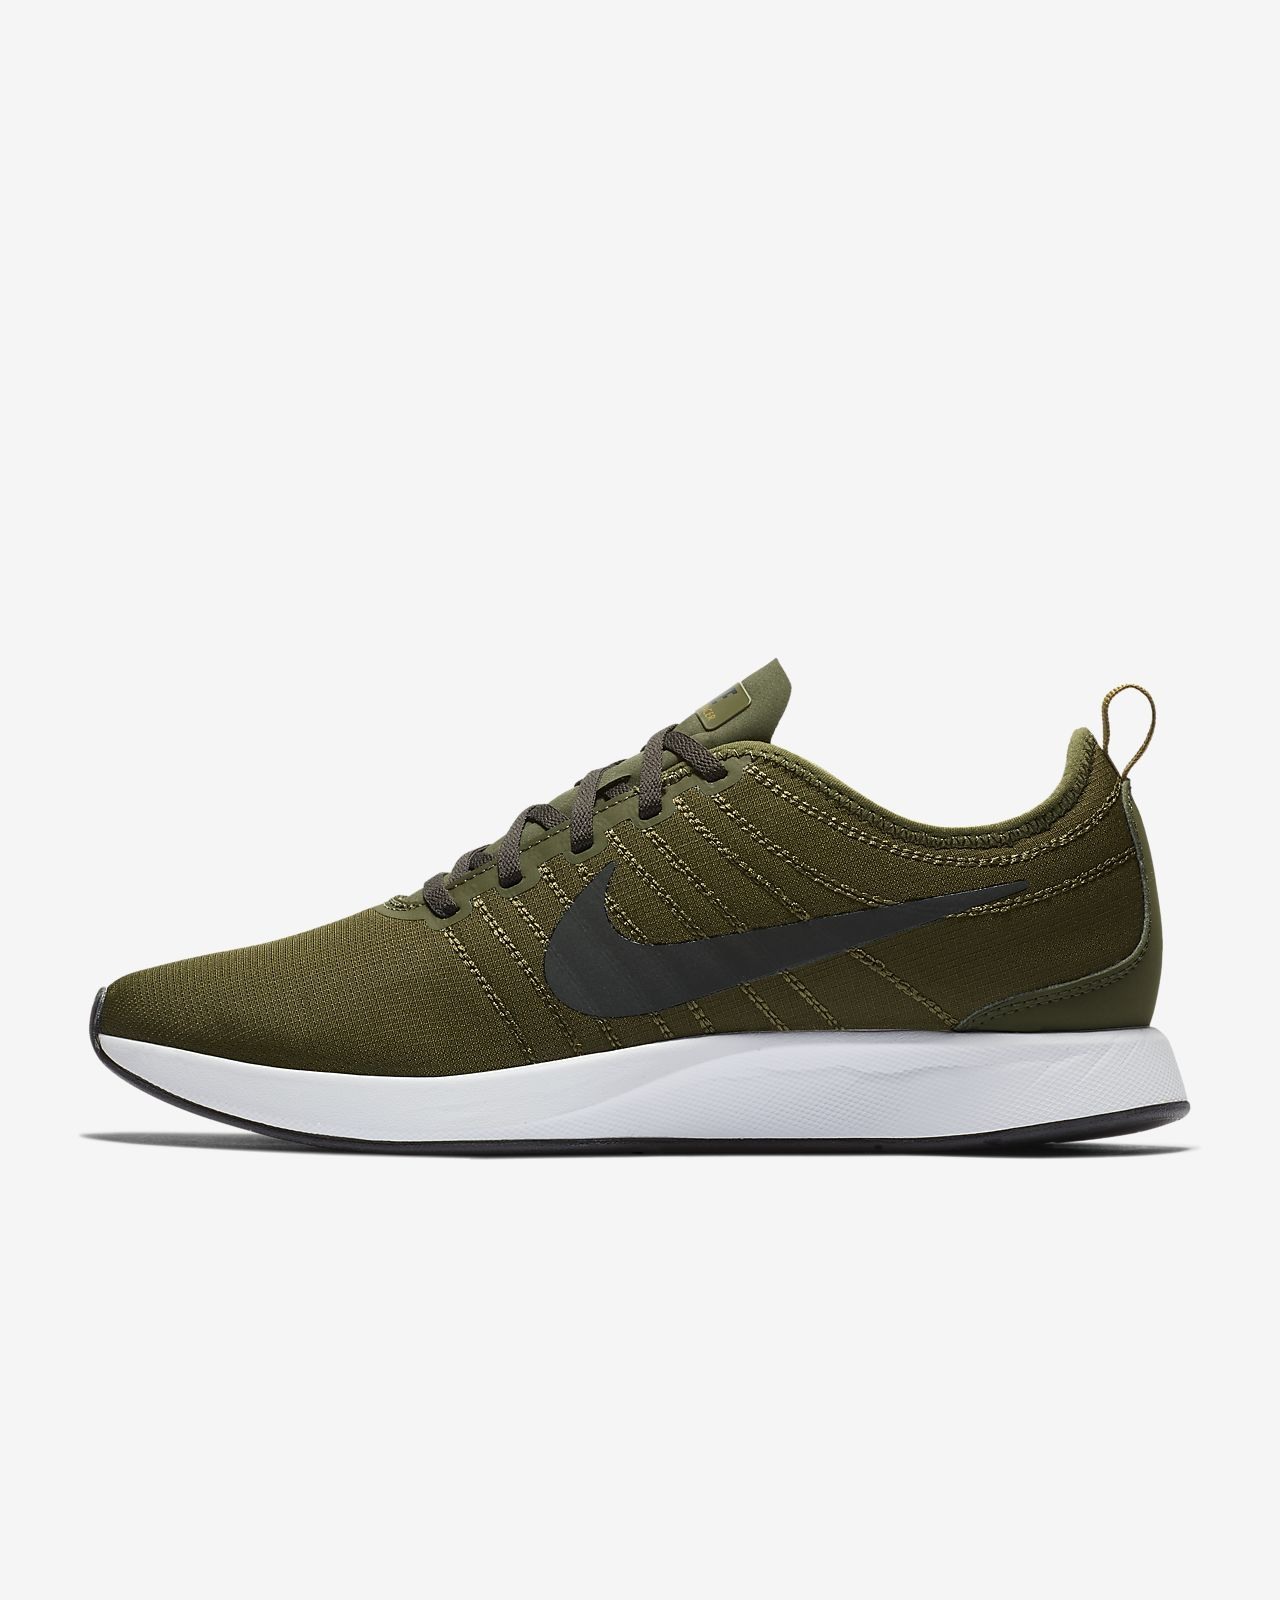 big sale 382cd 23c7d Low Resolution Chaussure Nike Dualtone Racer pour Homme Chaussure Nike  Dualtone Racer pour Homme